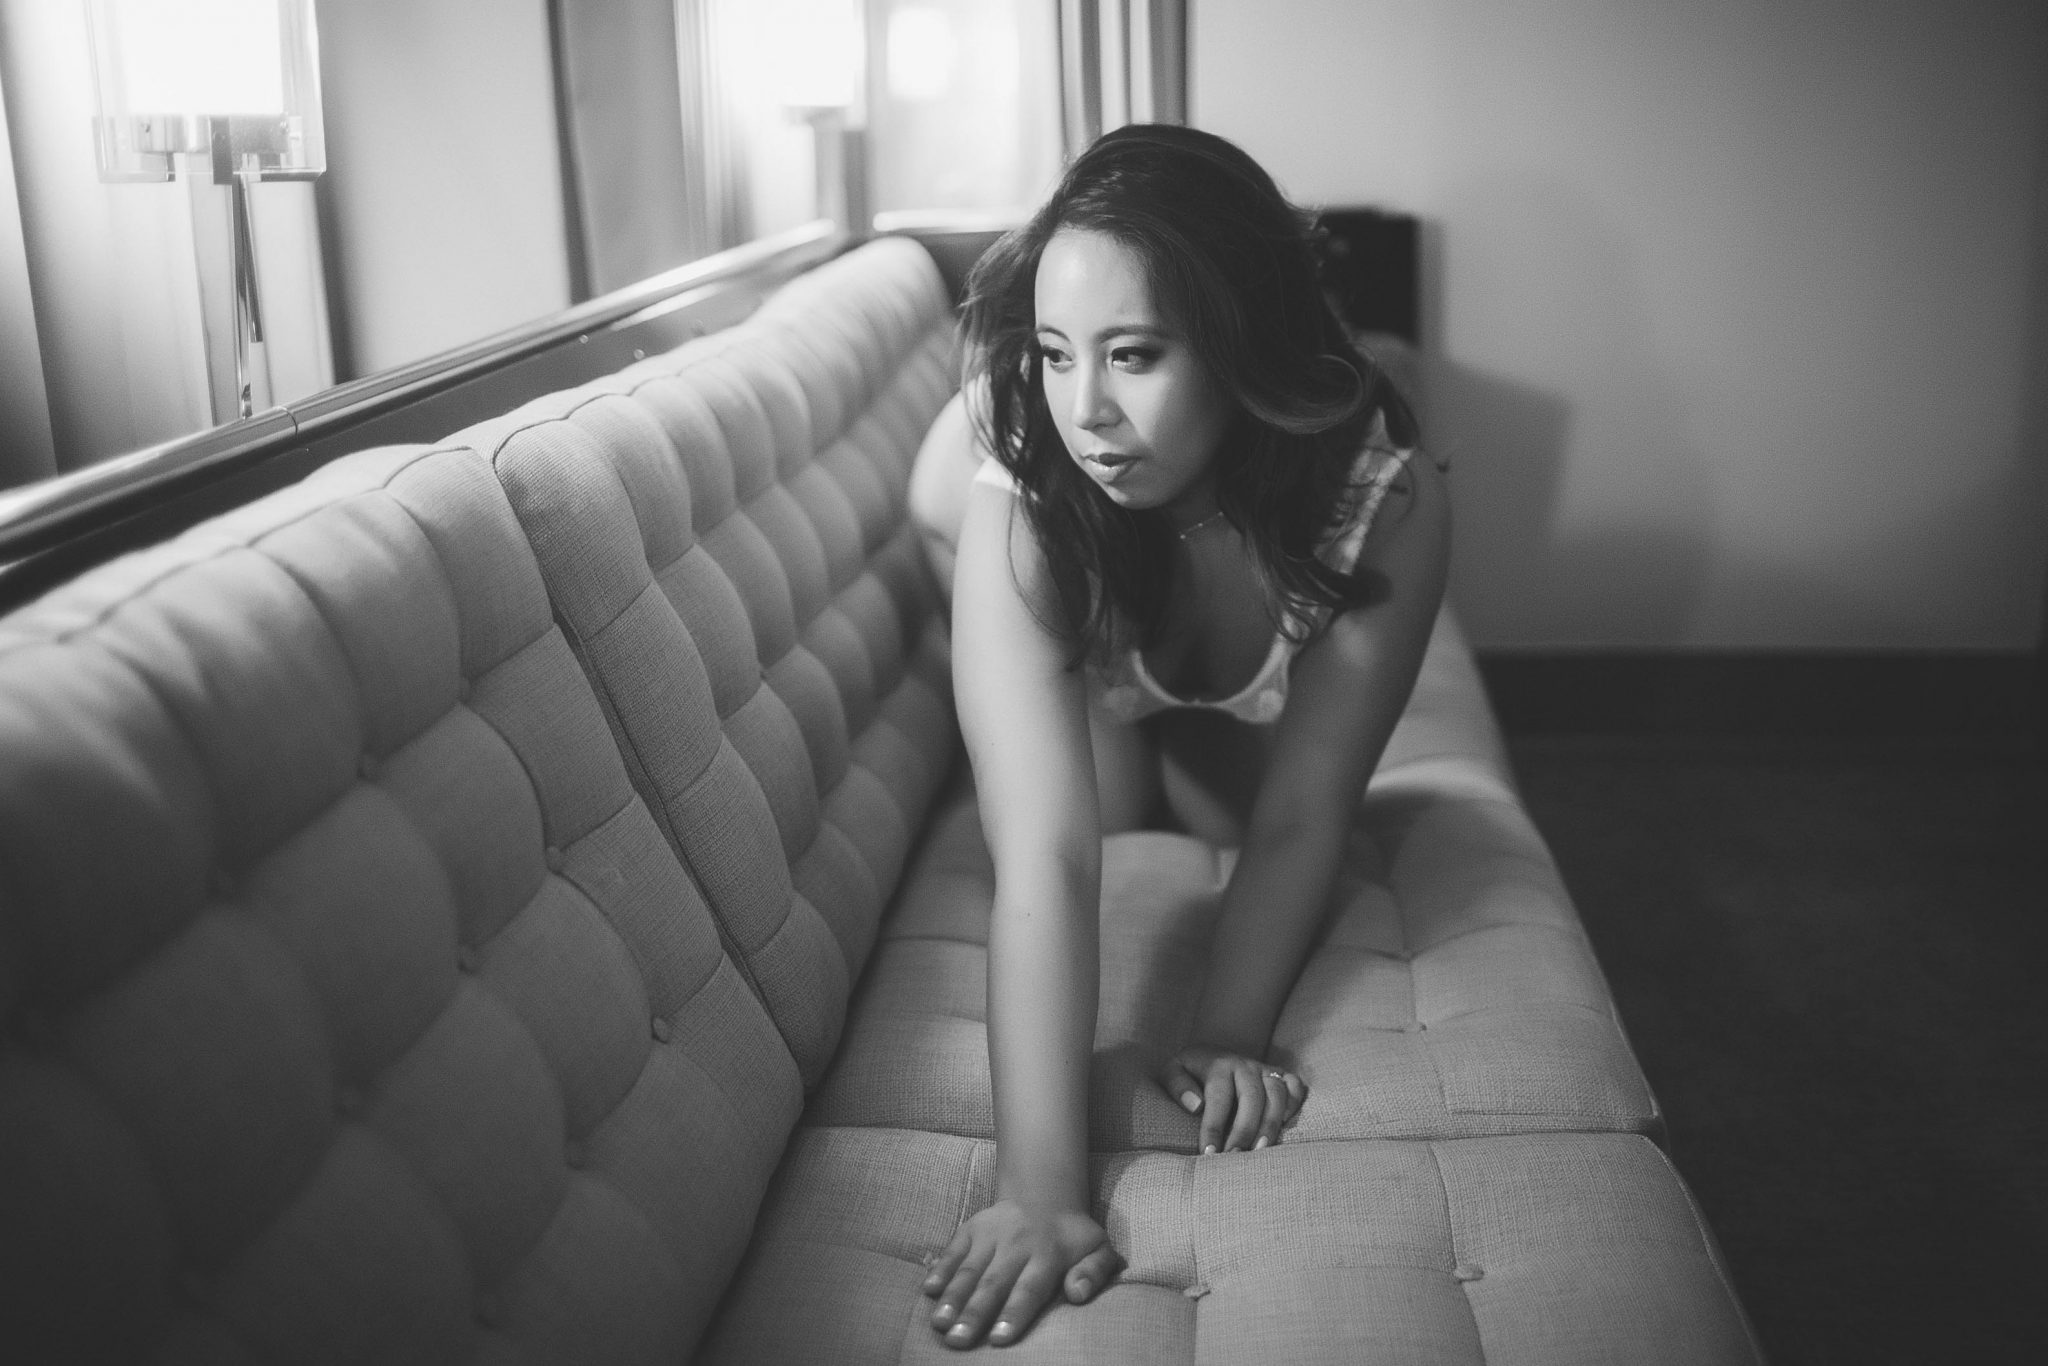 A woman wearing lingerie and posing on a couch